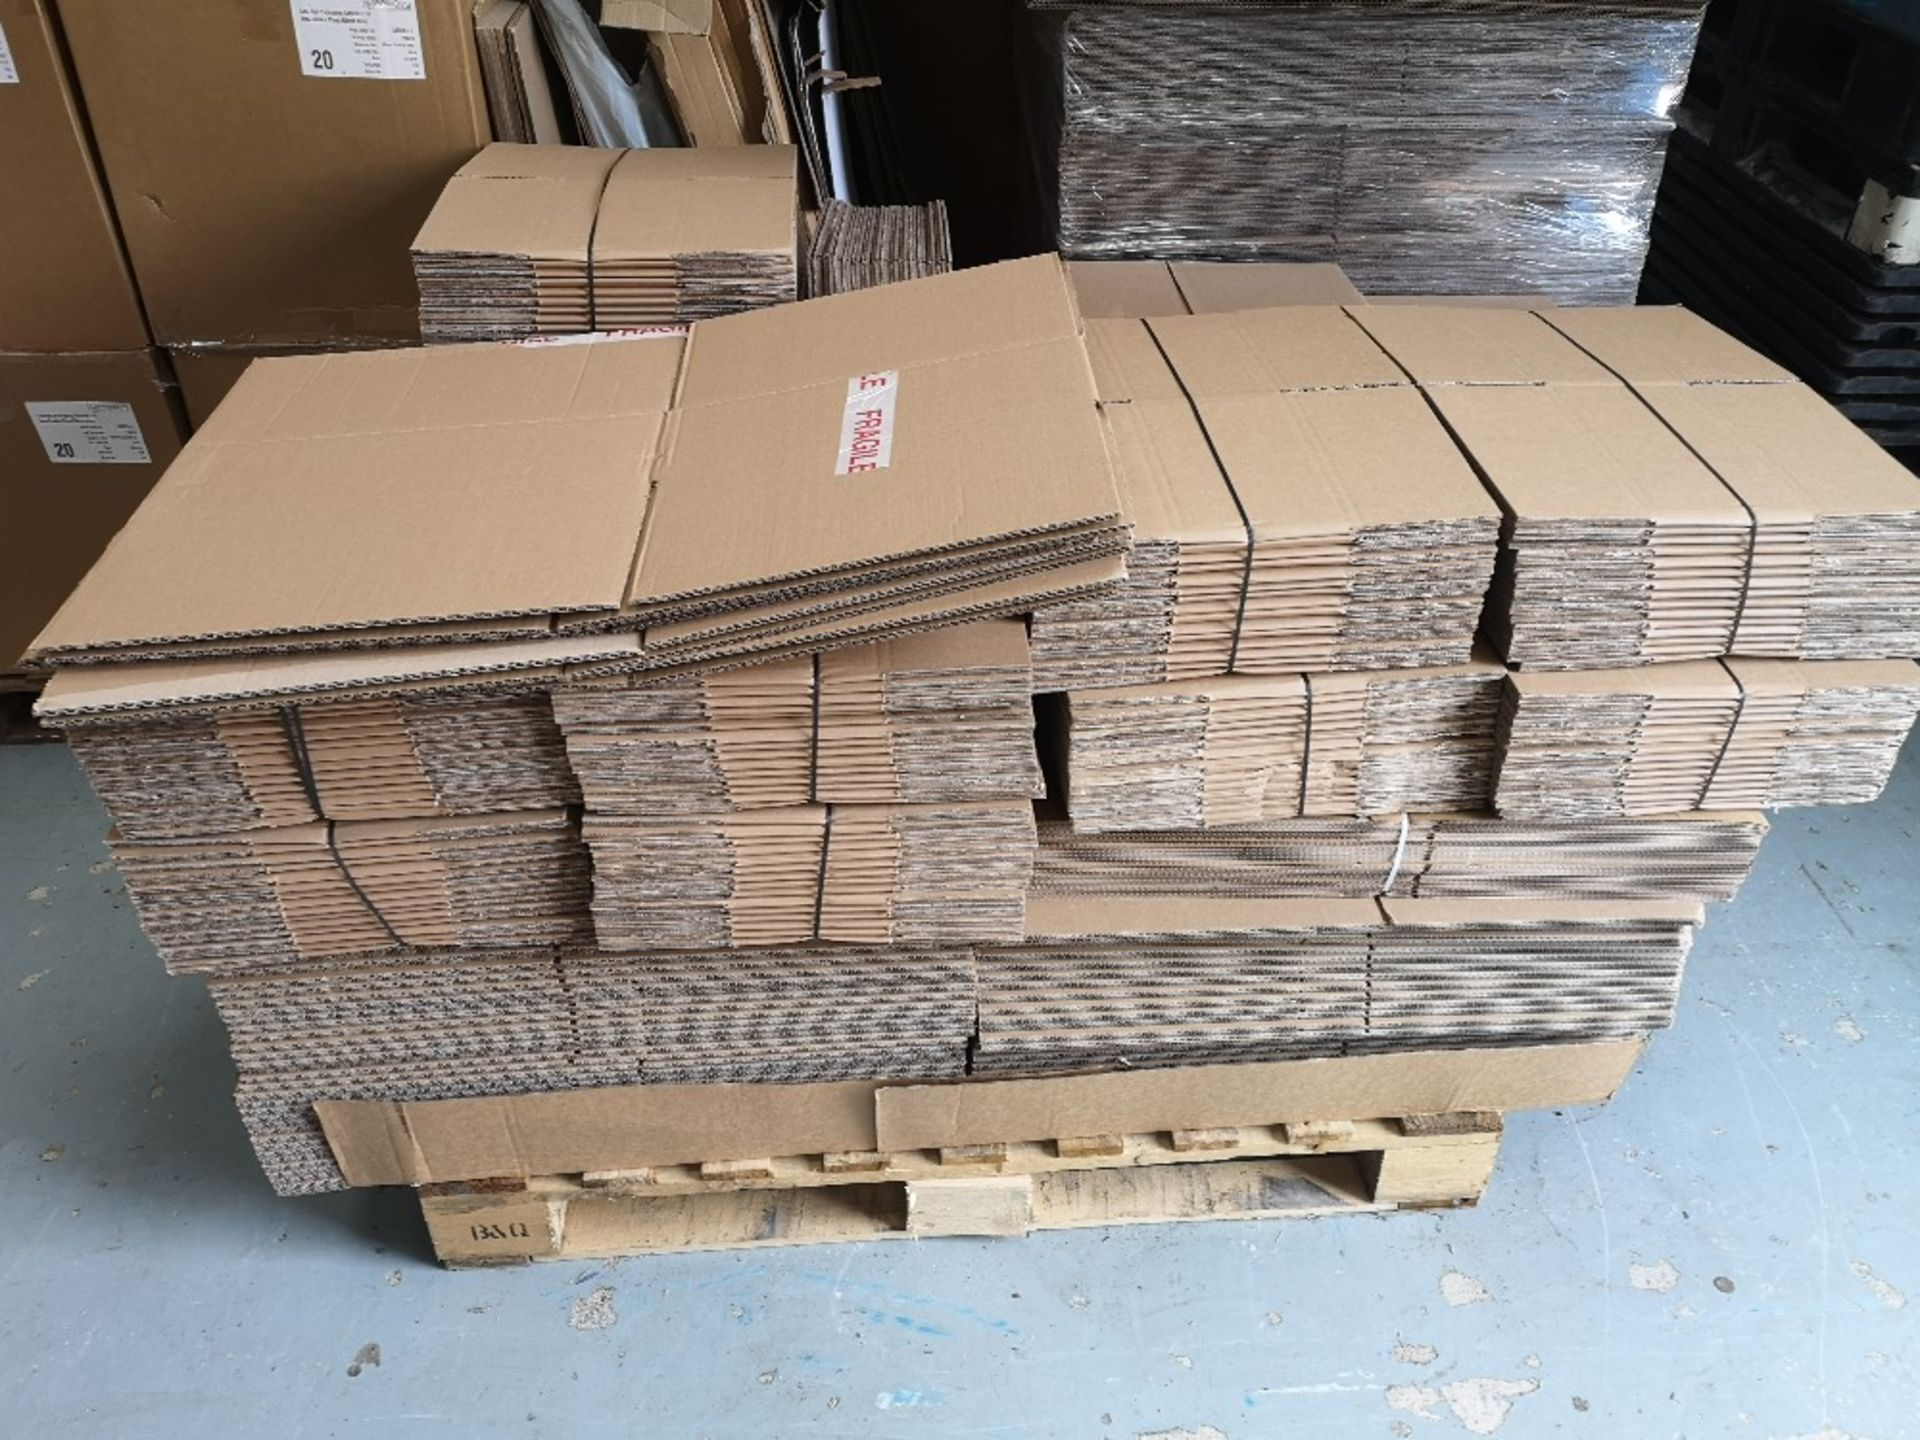 (2) Pallets of Various Sized Cardboard Boxes - Image 2 of 5